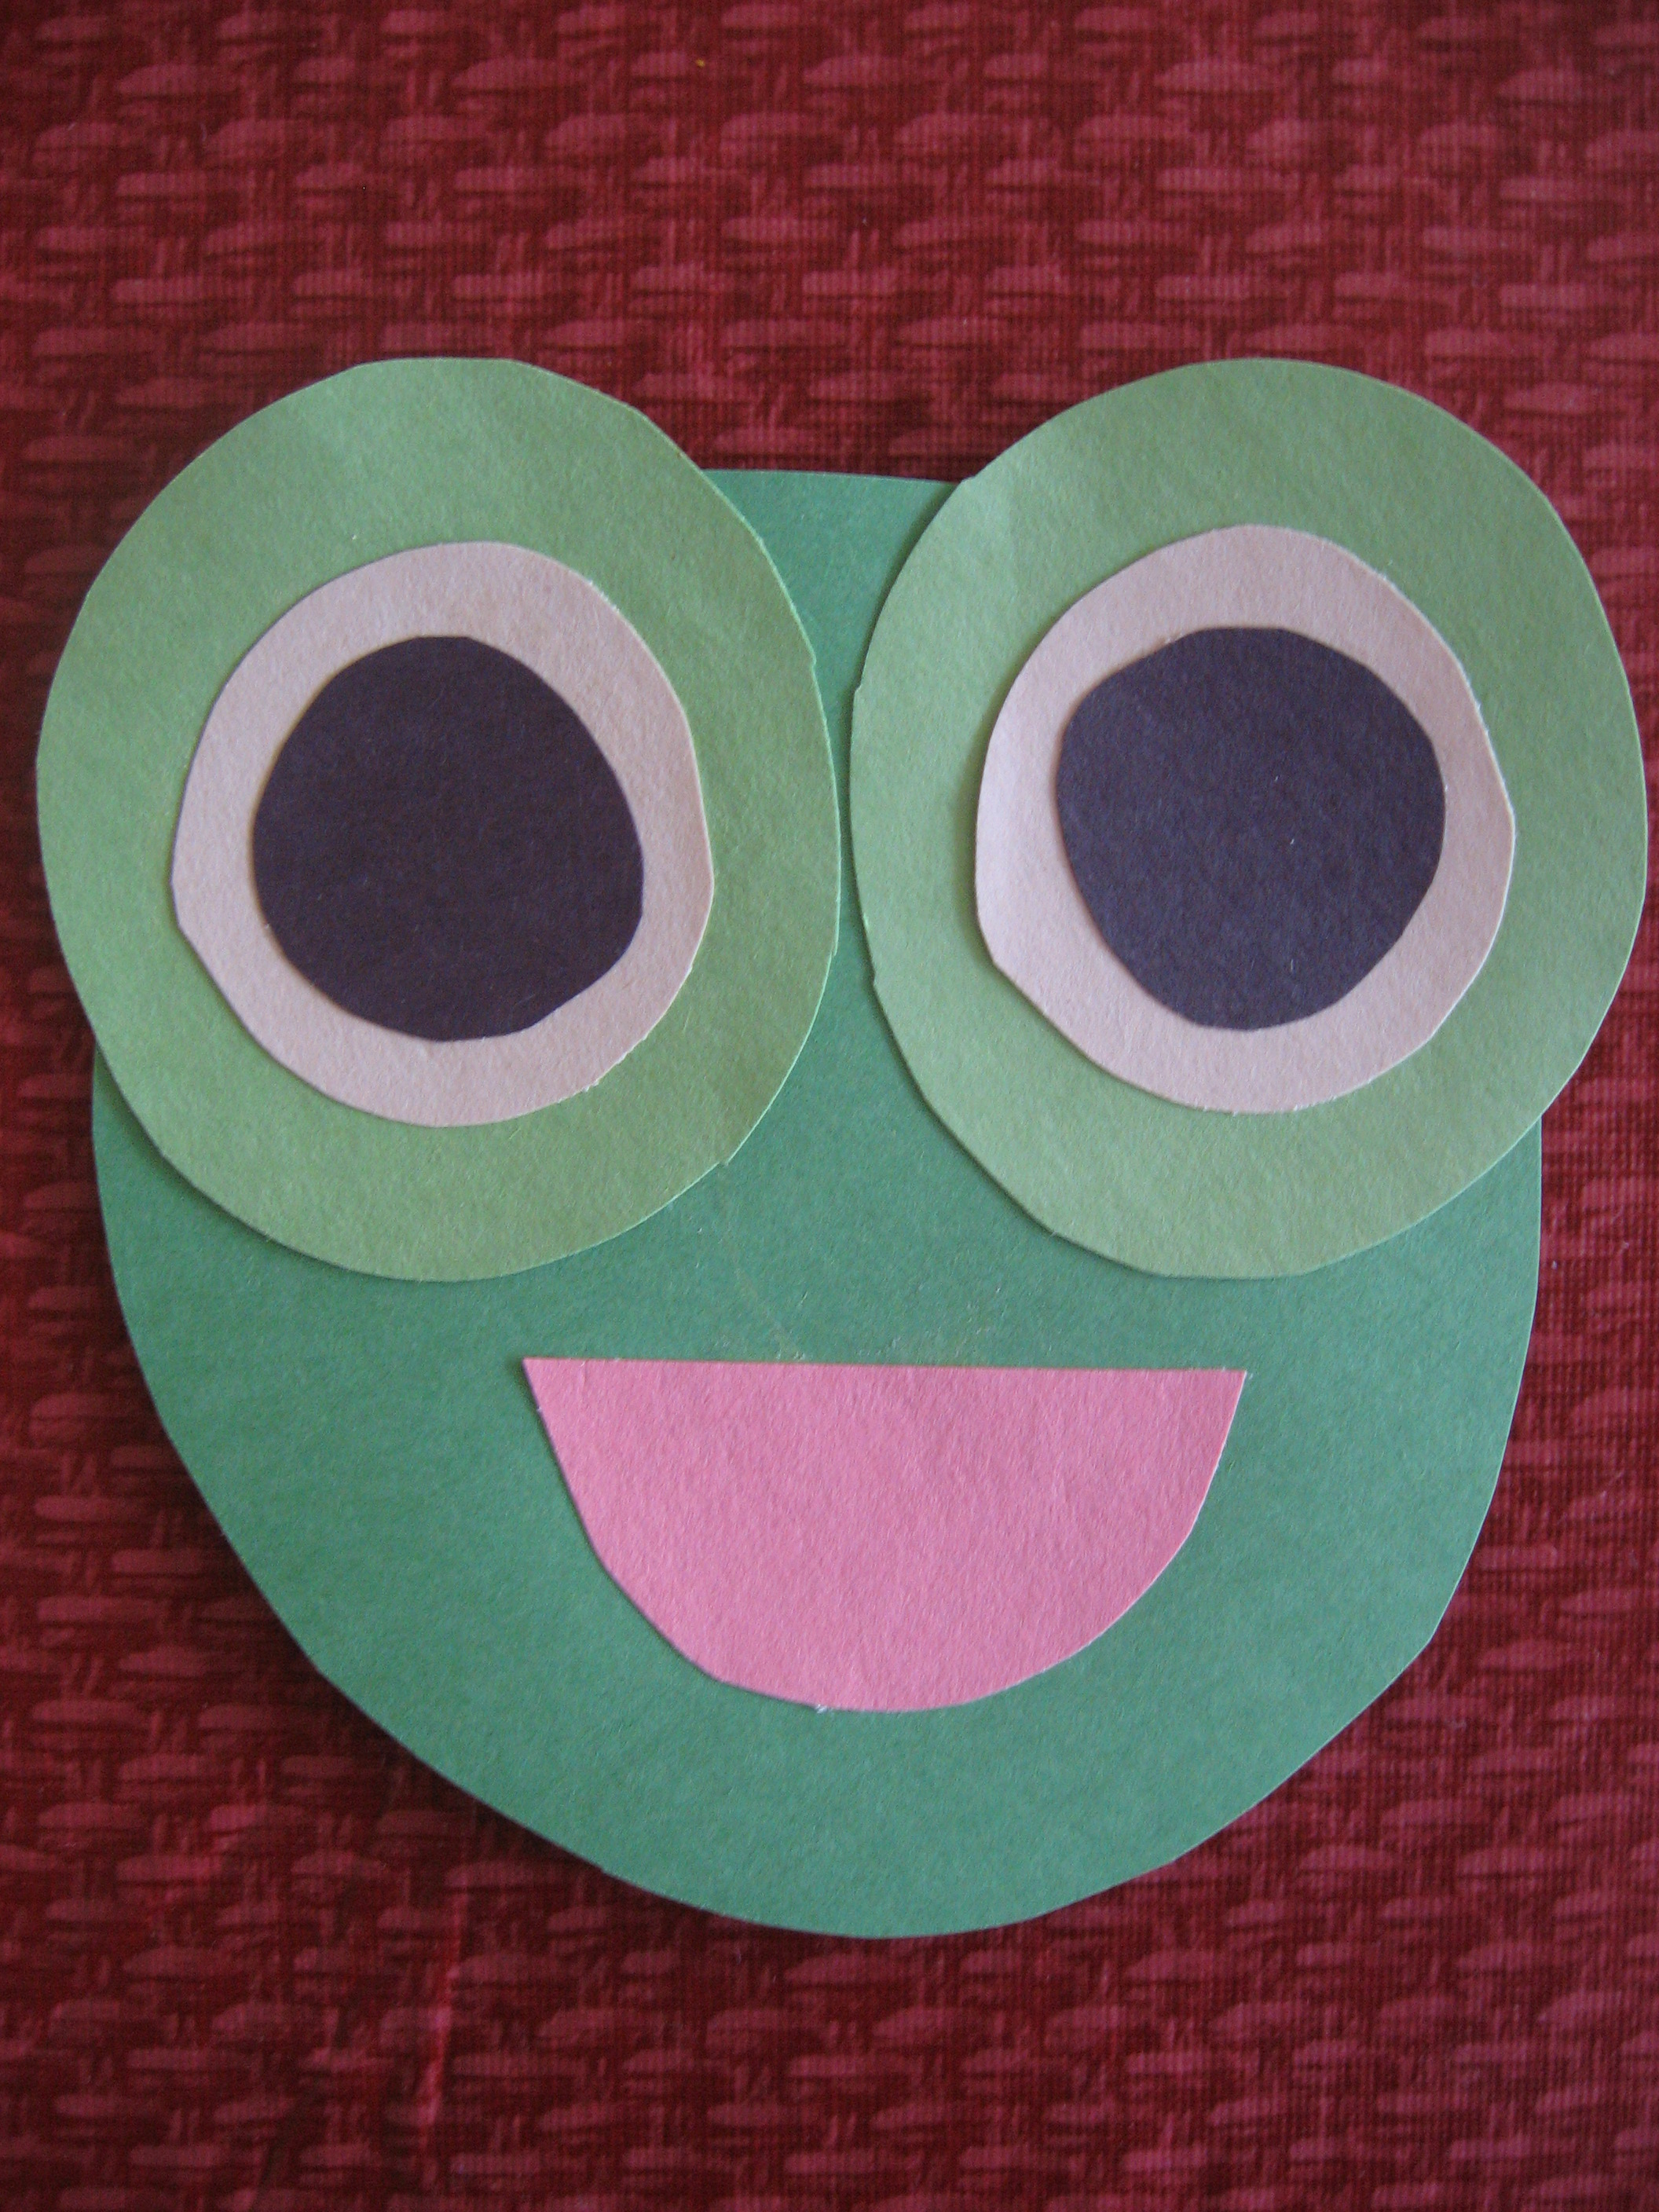 Simple and Cute Construction Paper Crafts for Kids Circle Frog Kiddie Crafts 365 Blog